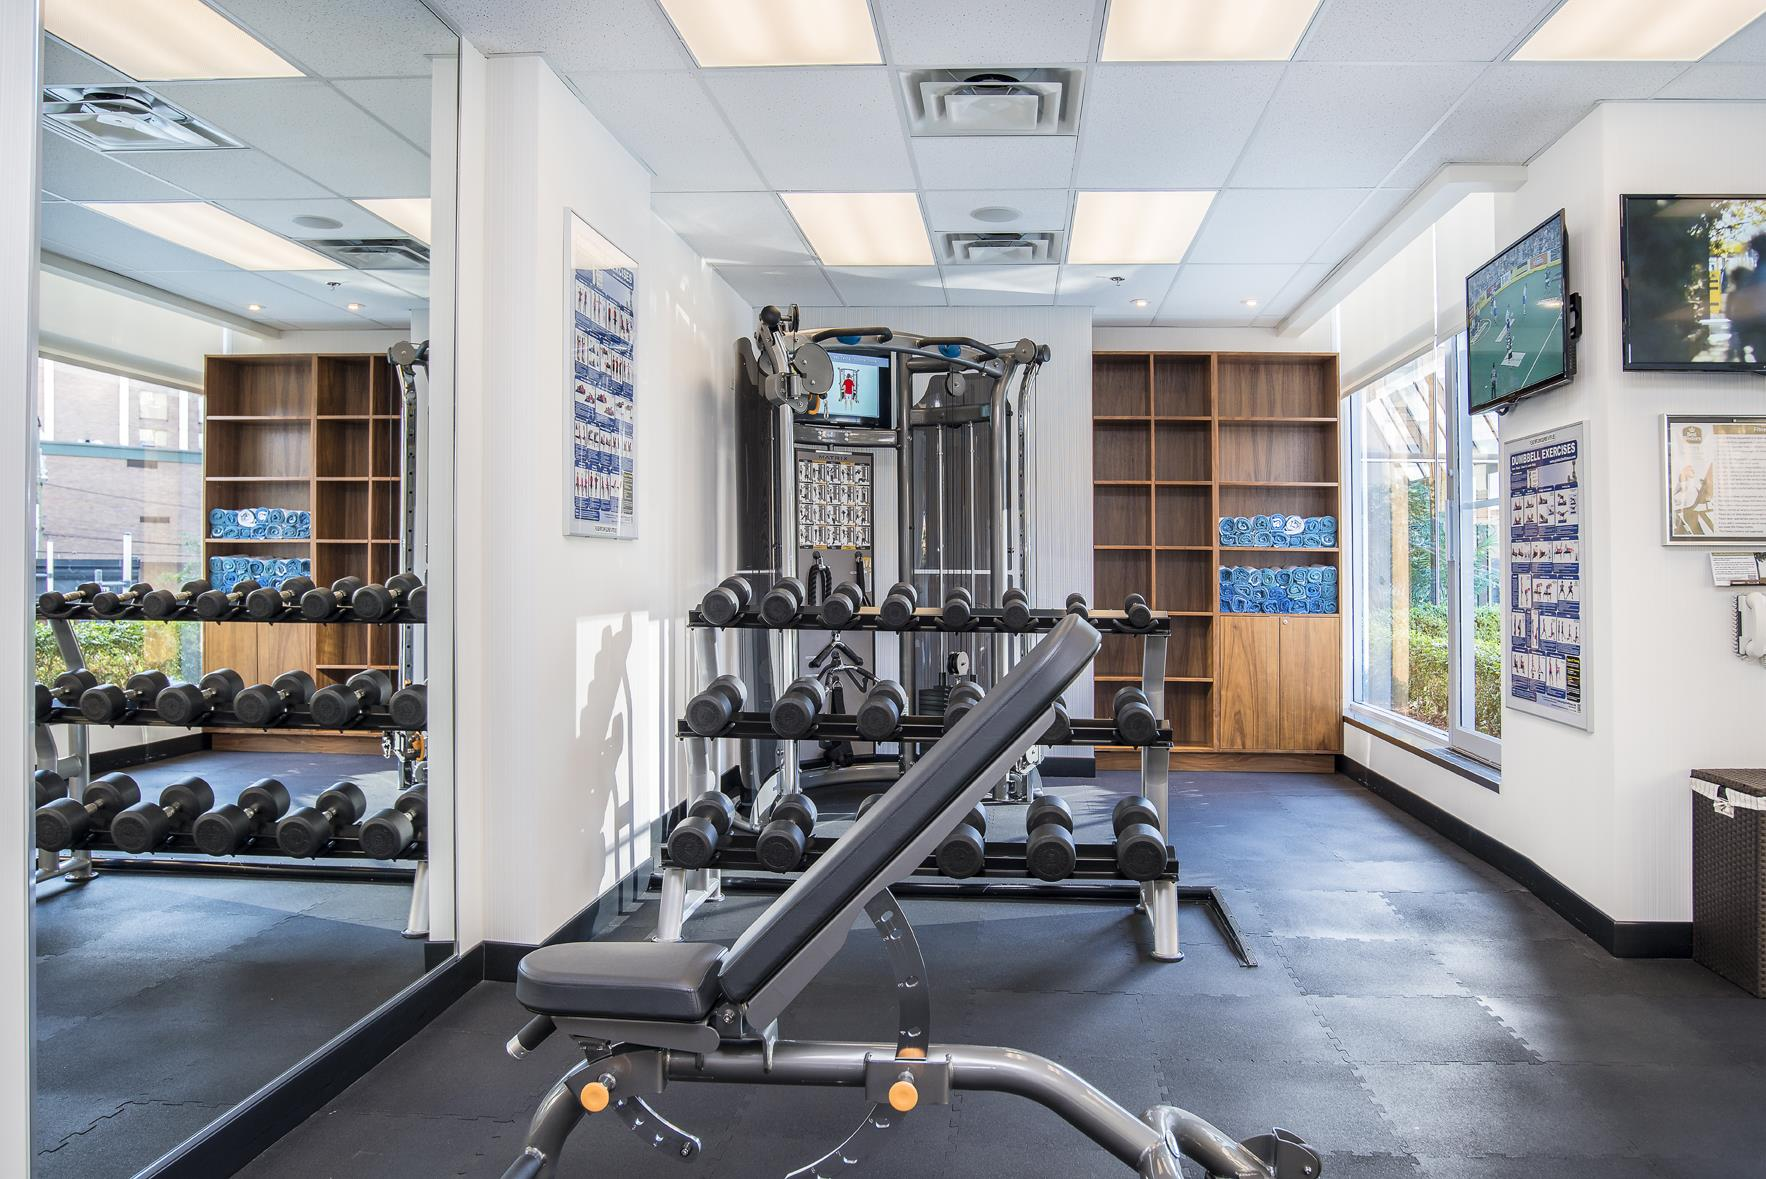 Best Western Plus Chateau Granville Hotel & Suites & Conference Ctr. in Vancouver: Fitness Center